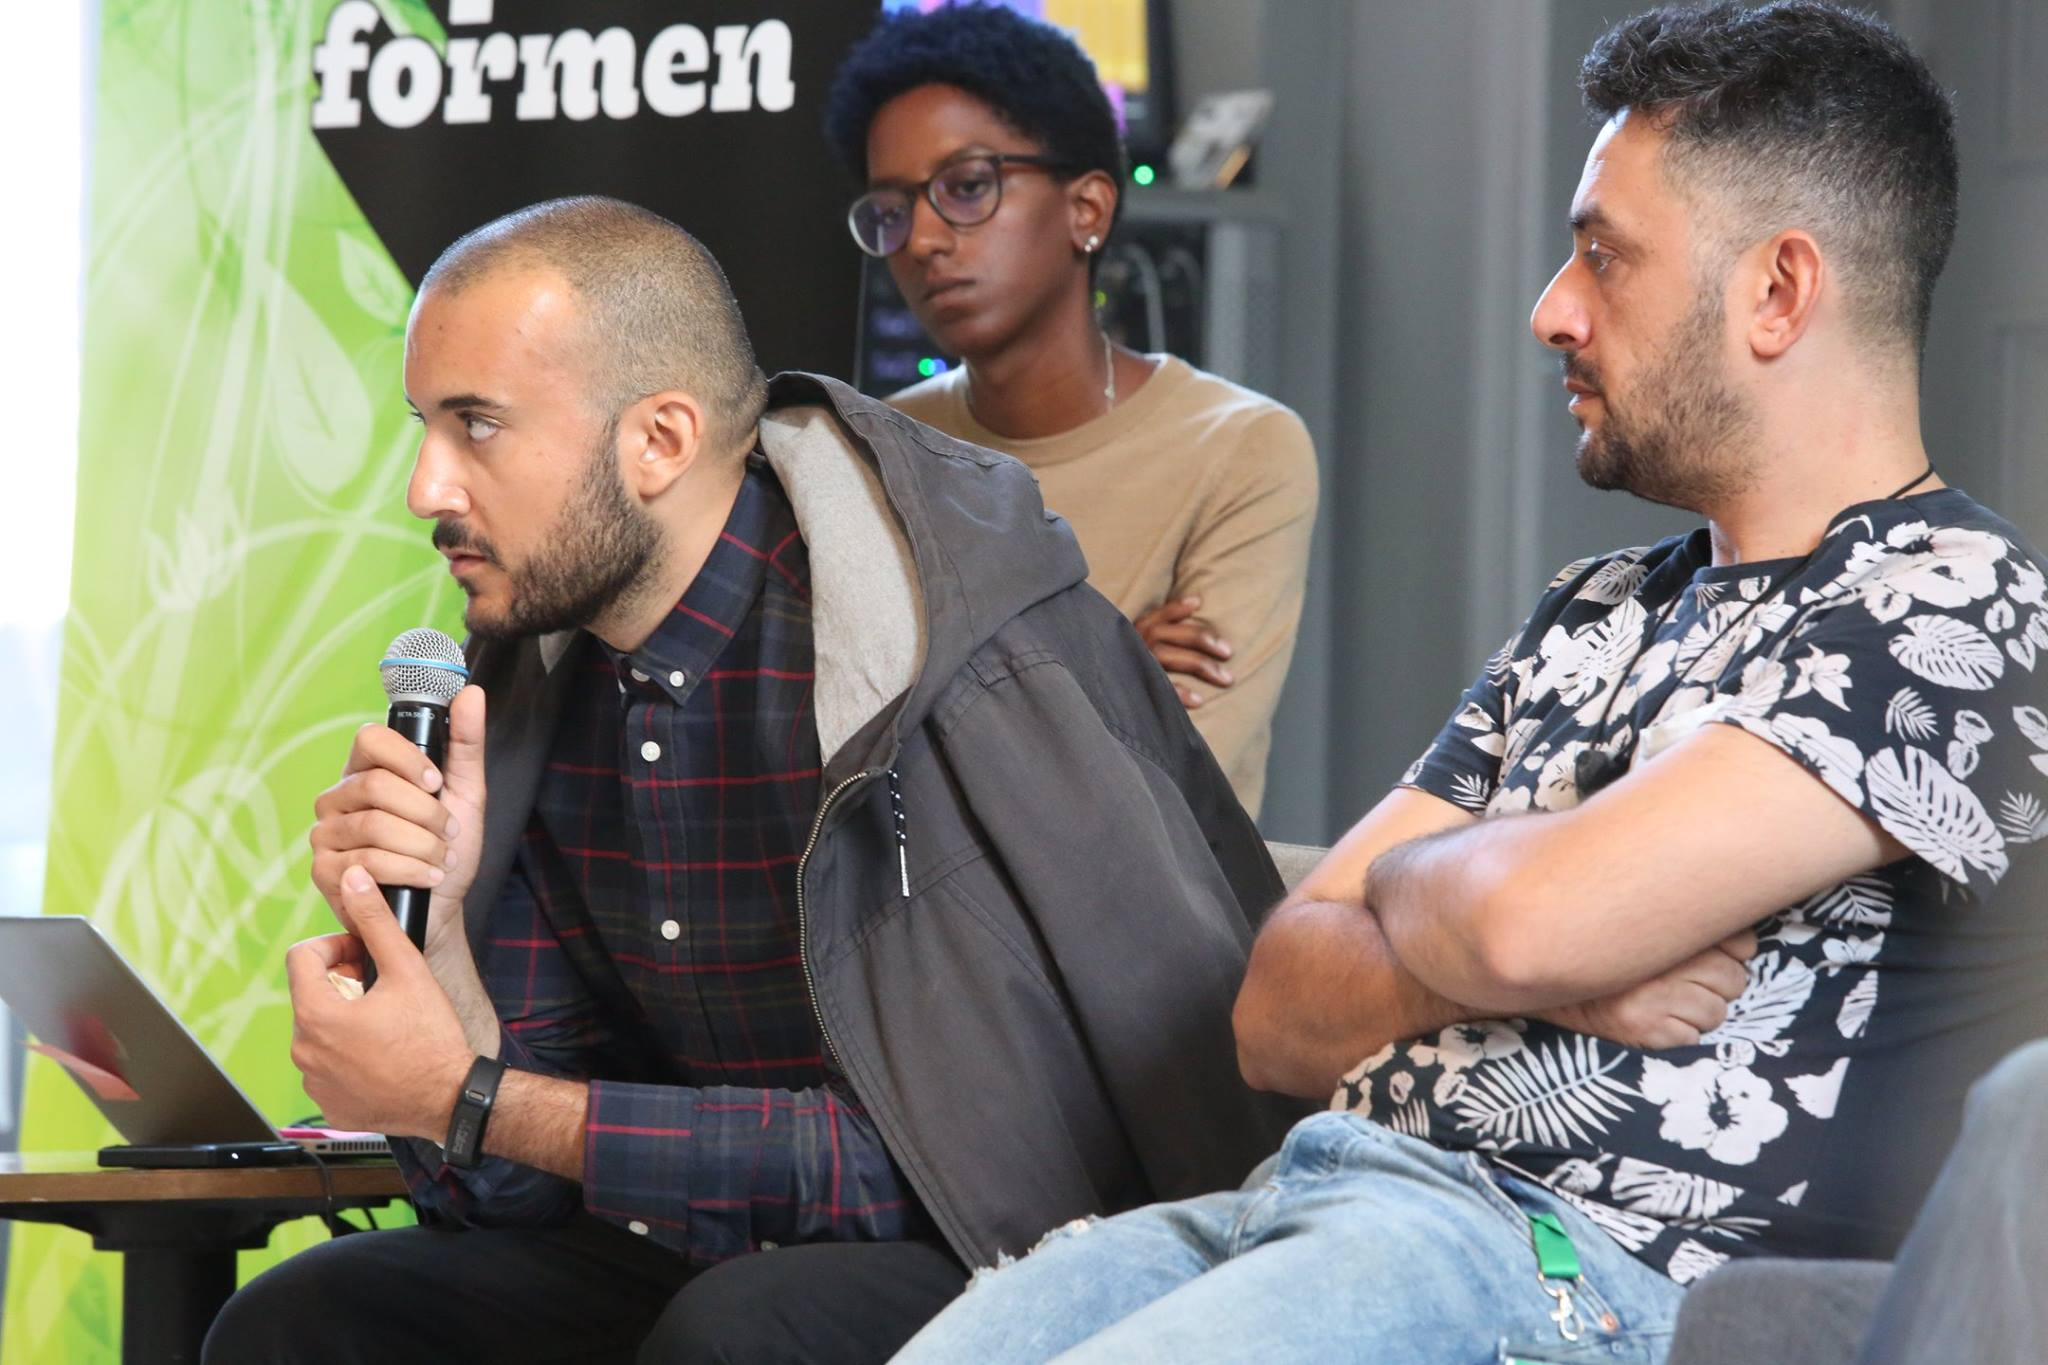 Khaled Harara, Hip-Hop Artist, ICORN artist in residence in Gothenburg 2015-2017. Participated in The Festival Academy August 2018 in Gothenburg. Photo.